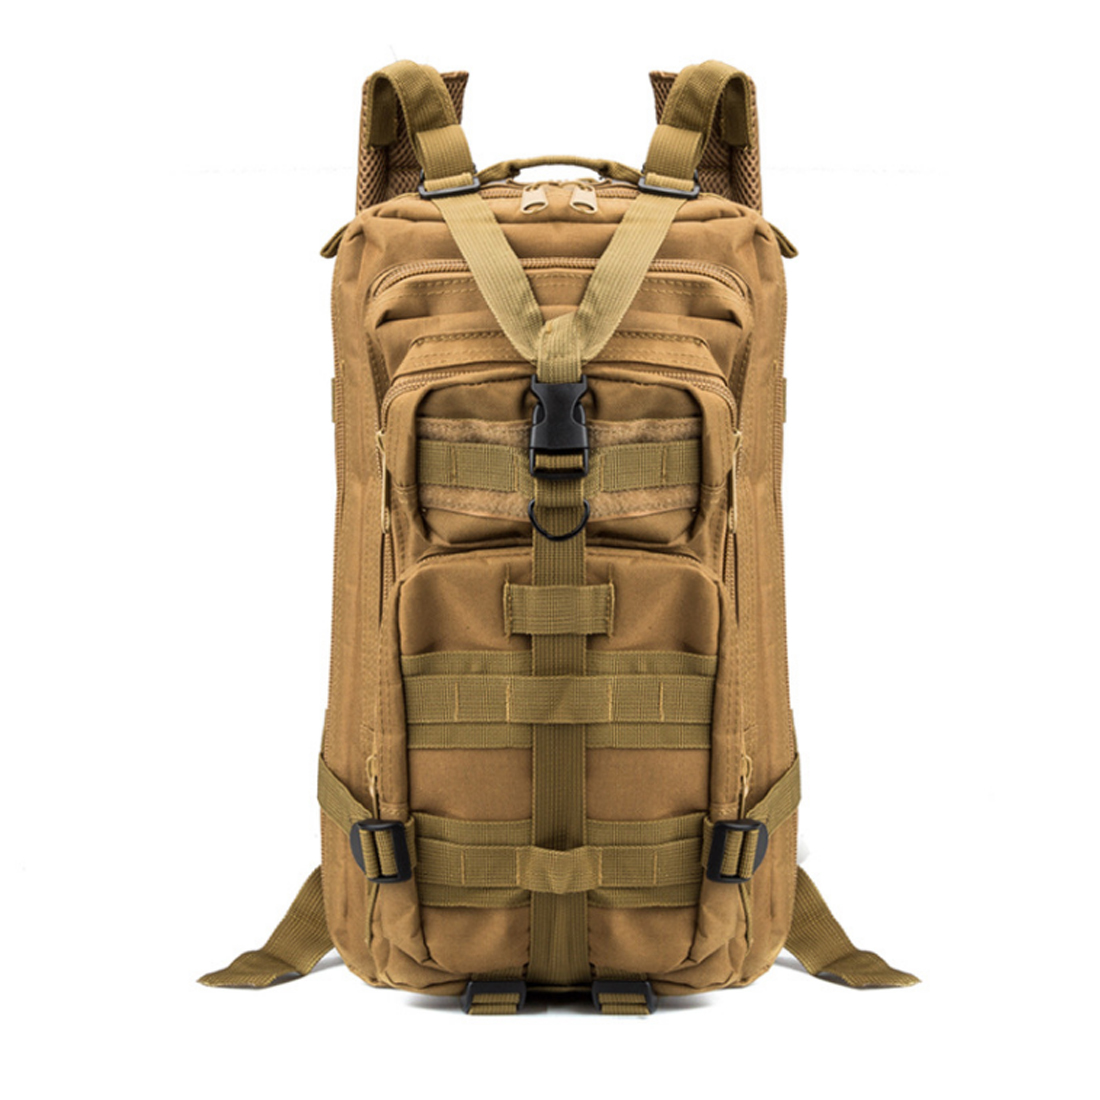 2017 Men Women Outdoor Military Army Tactical Backpack Trekking Sport Travel Rucksacks Camping Hiking Trekking Camouflage Bag стоимость